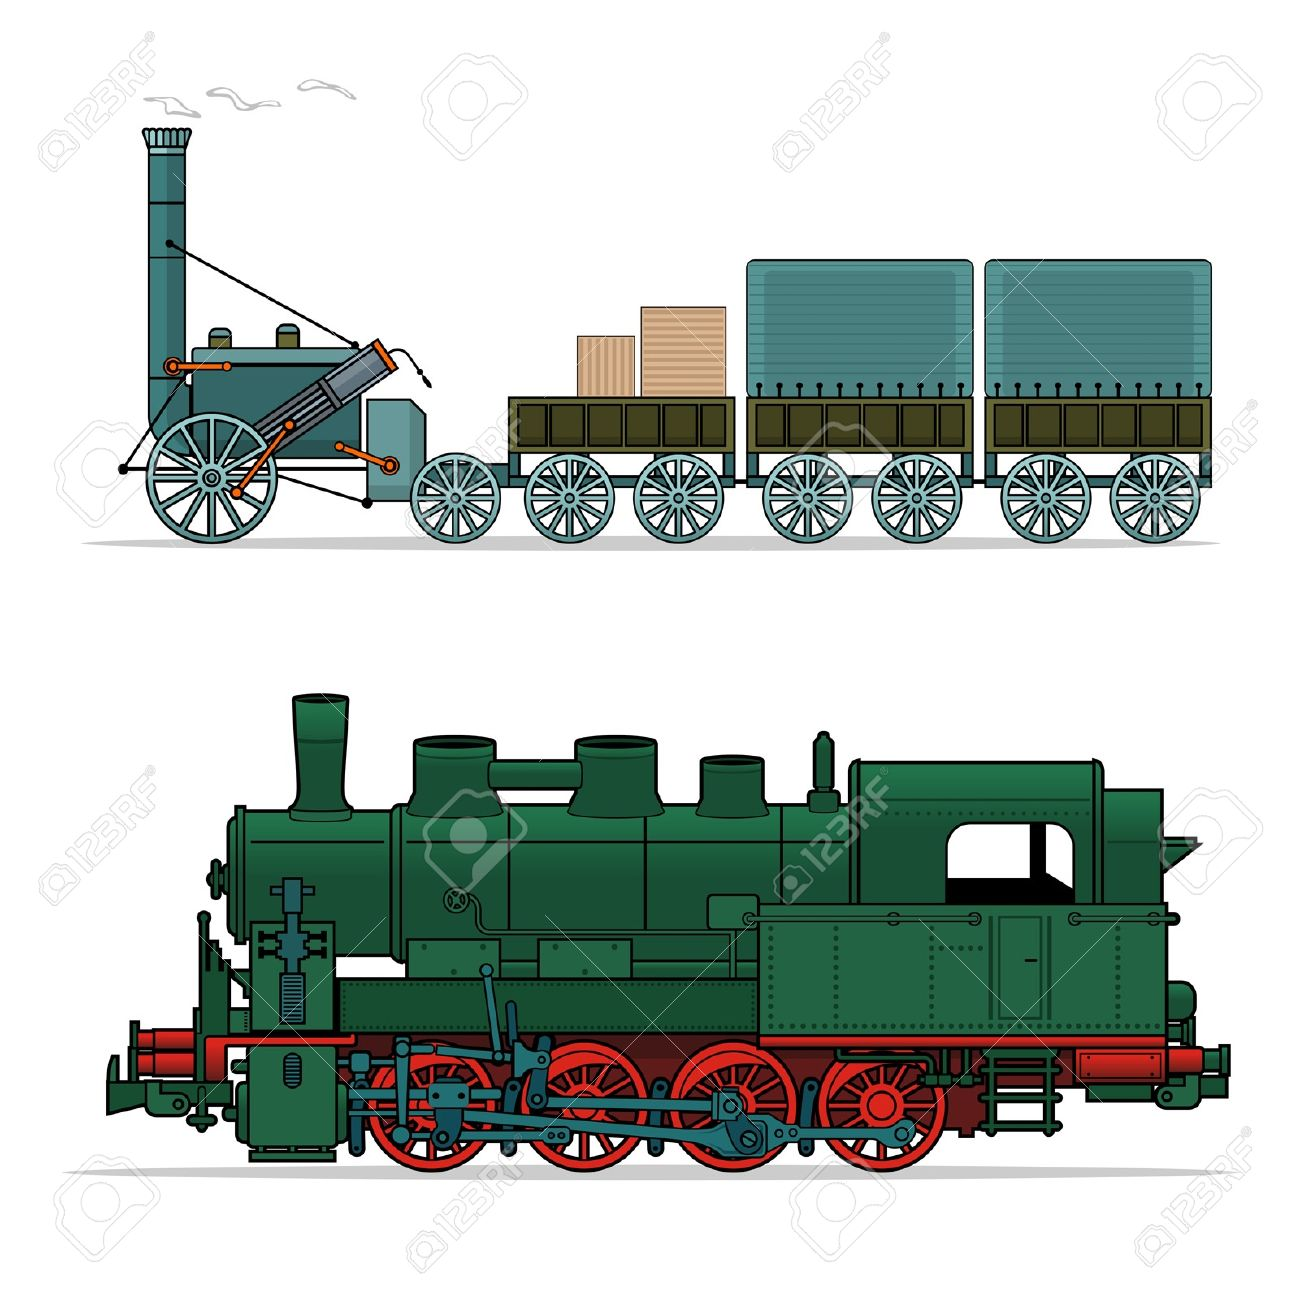 573 Steam Boilers Stock Illustrations, Cliparts And Royalty Free.